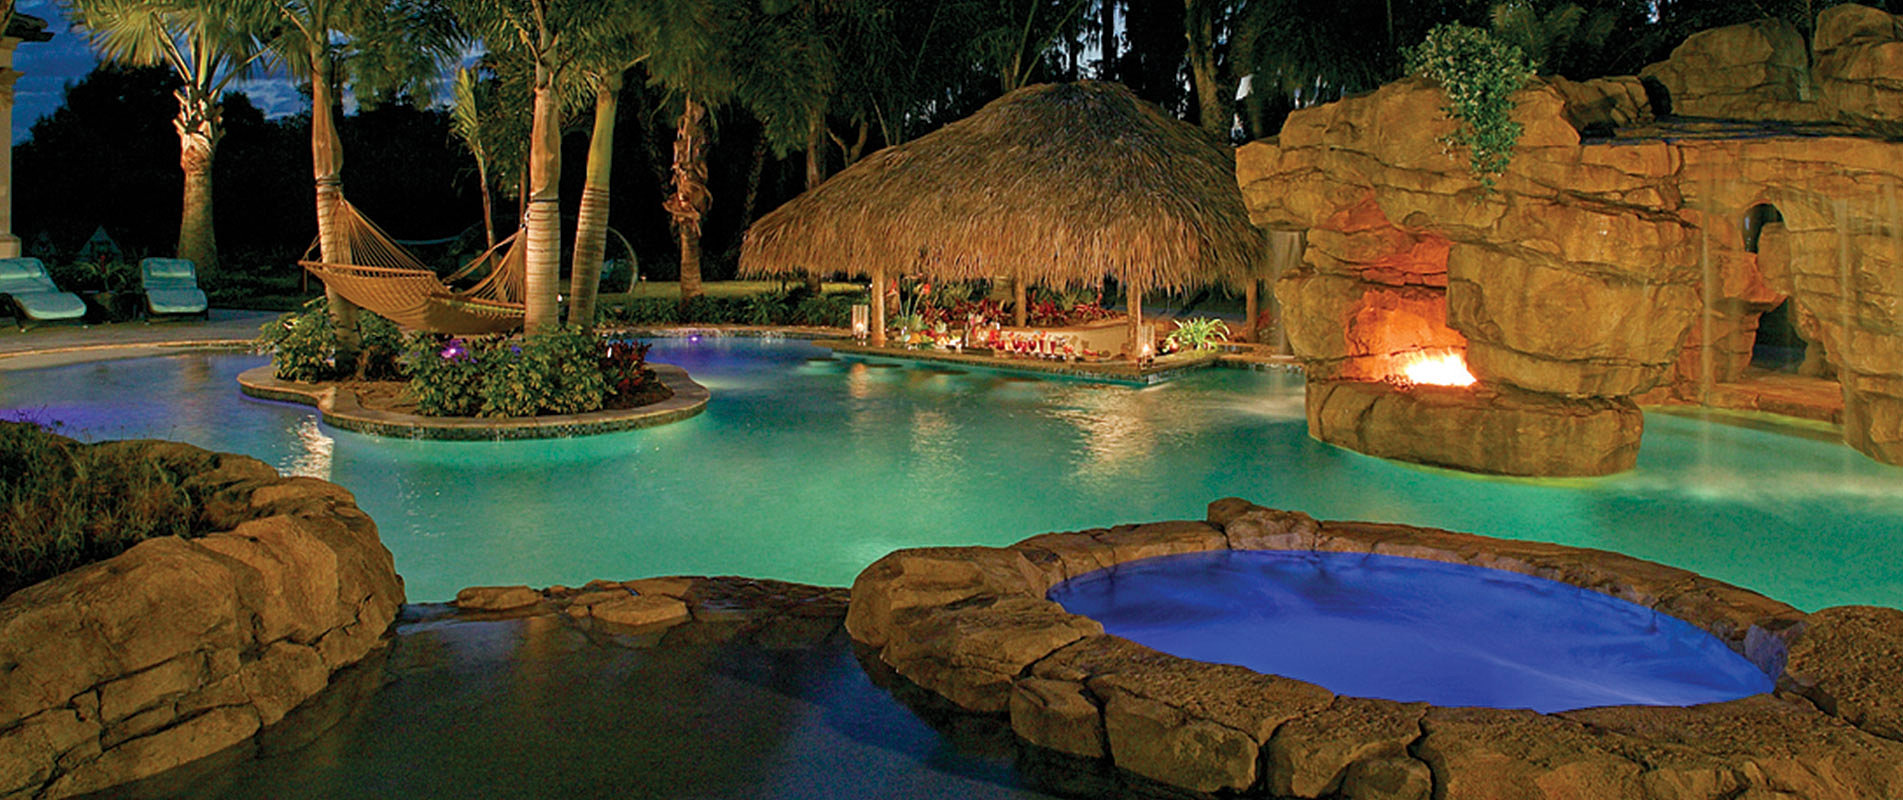 Custom luxury pools in central florida by southern pool for Pool designs images